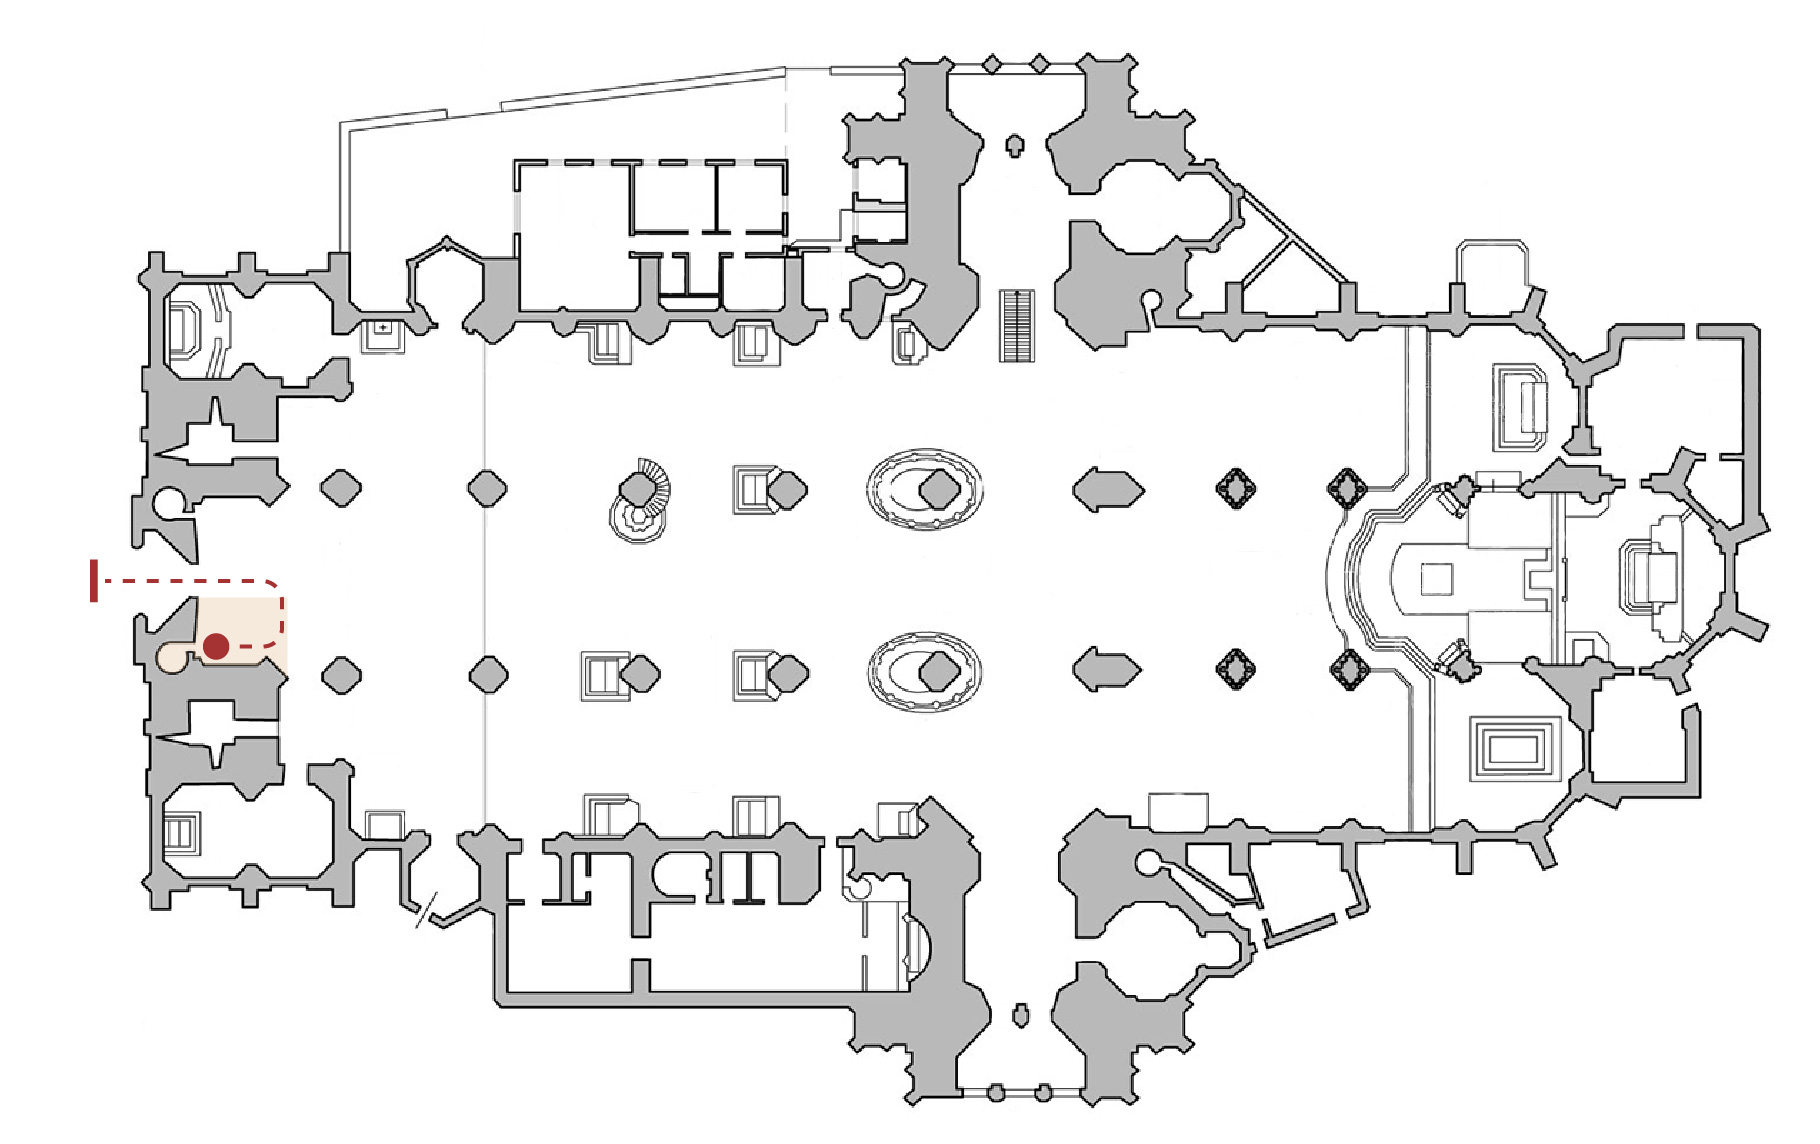 Floor plan of the Cathedral treasure